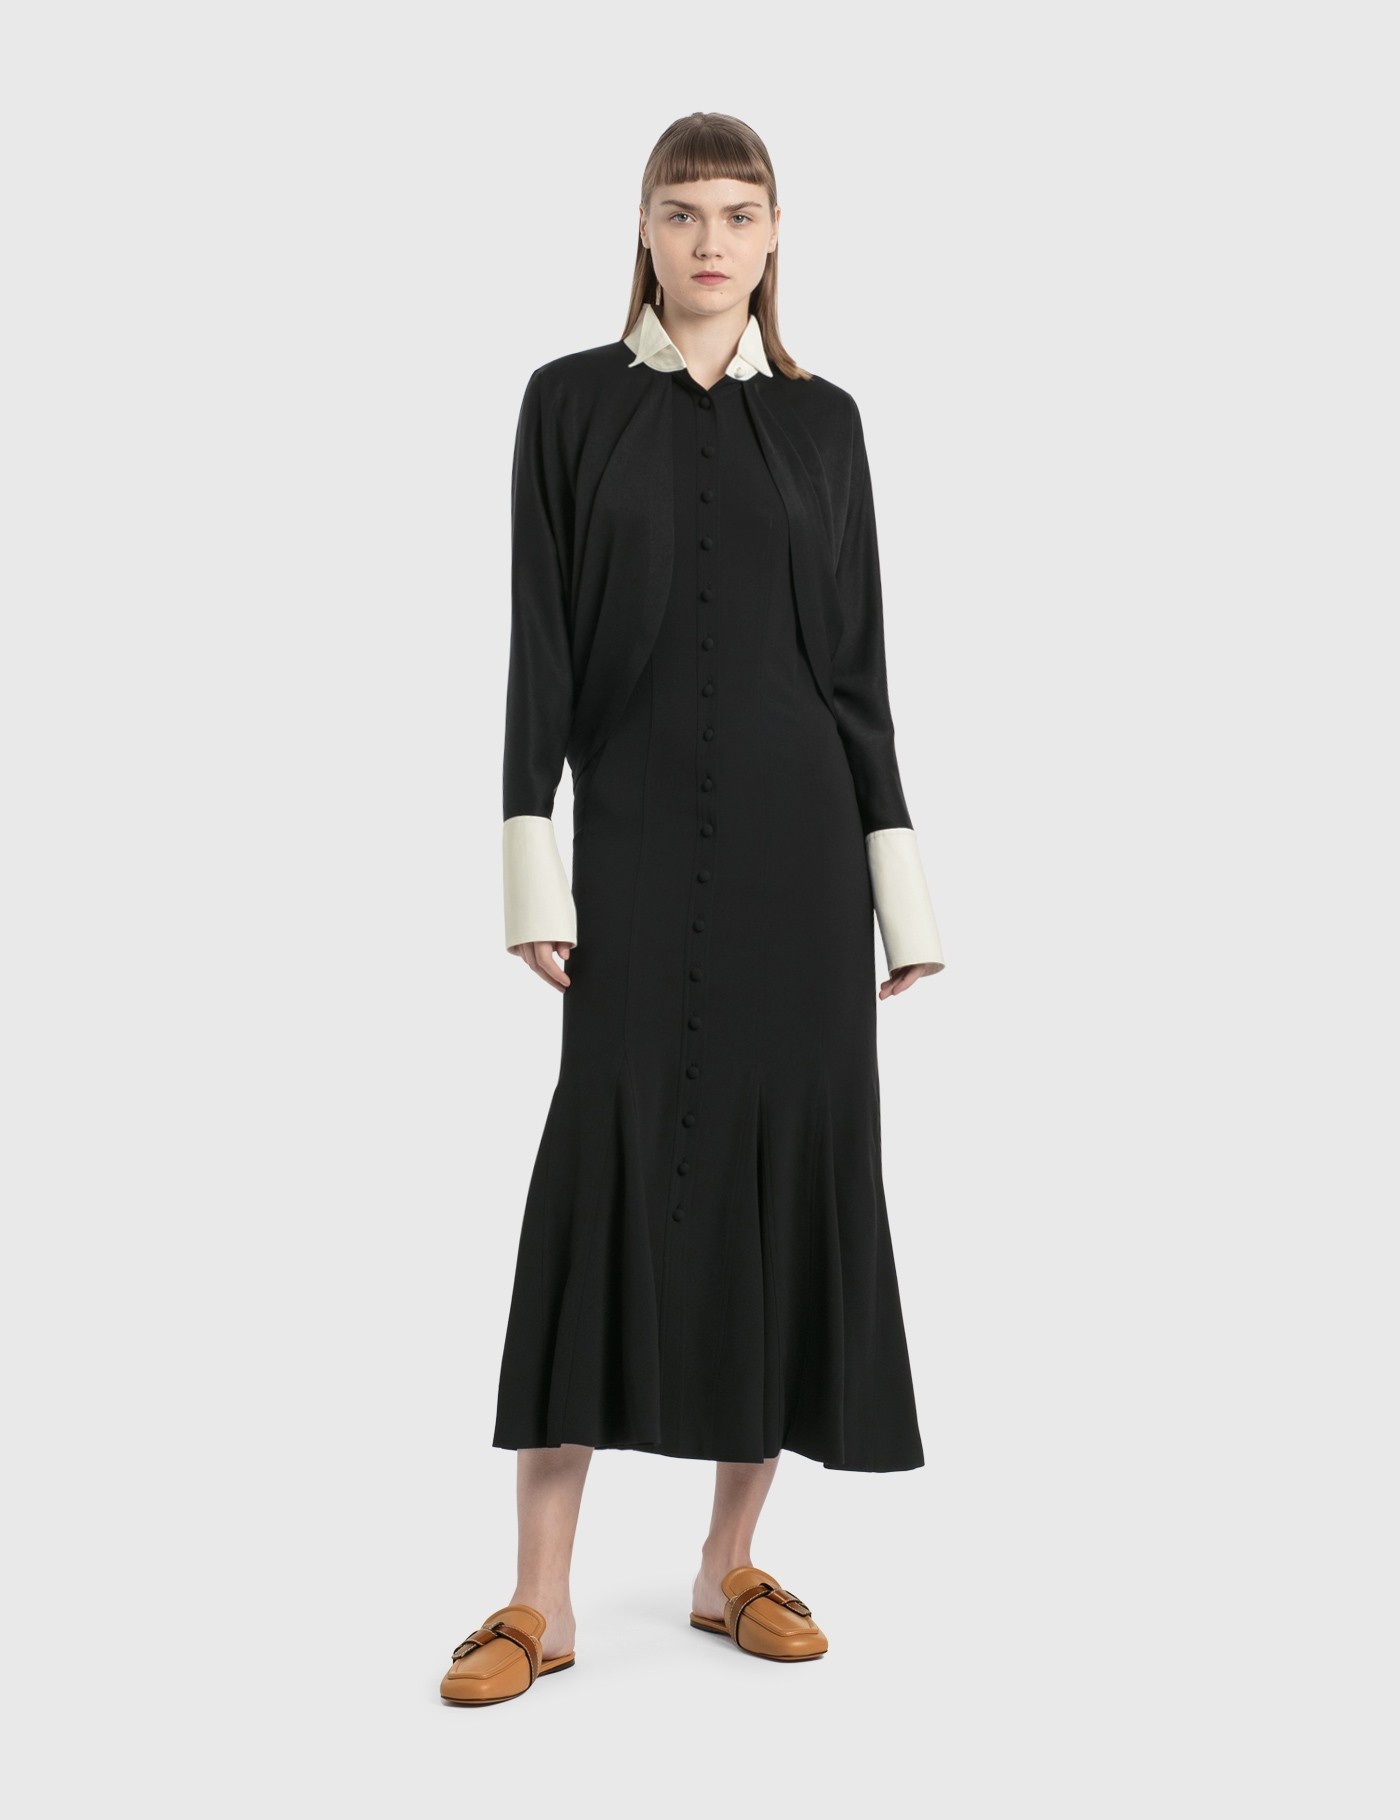 Loewe Dresses CAPE SLEEVE LONG DRESS IN SATIN BACK CREPE